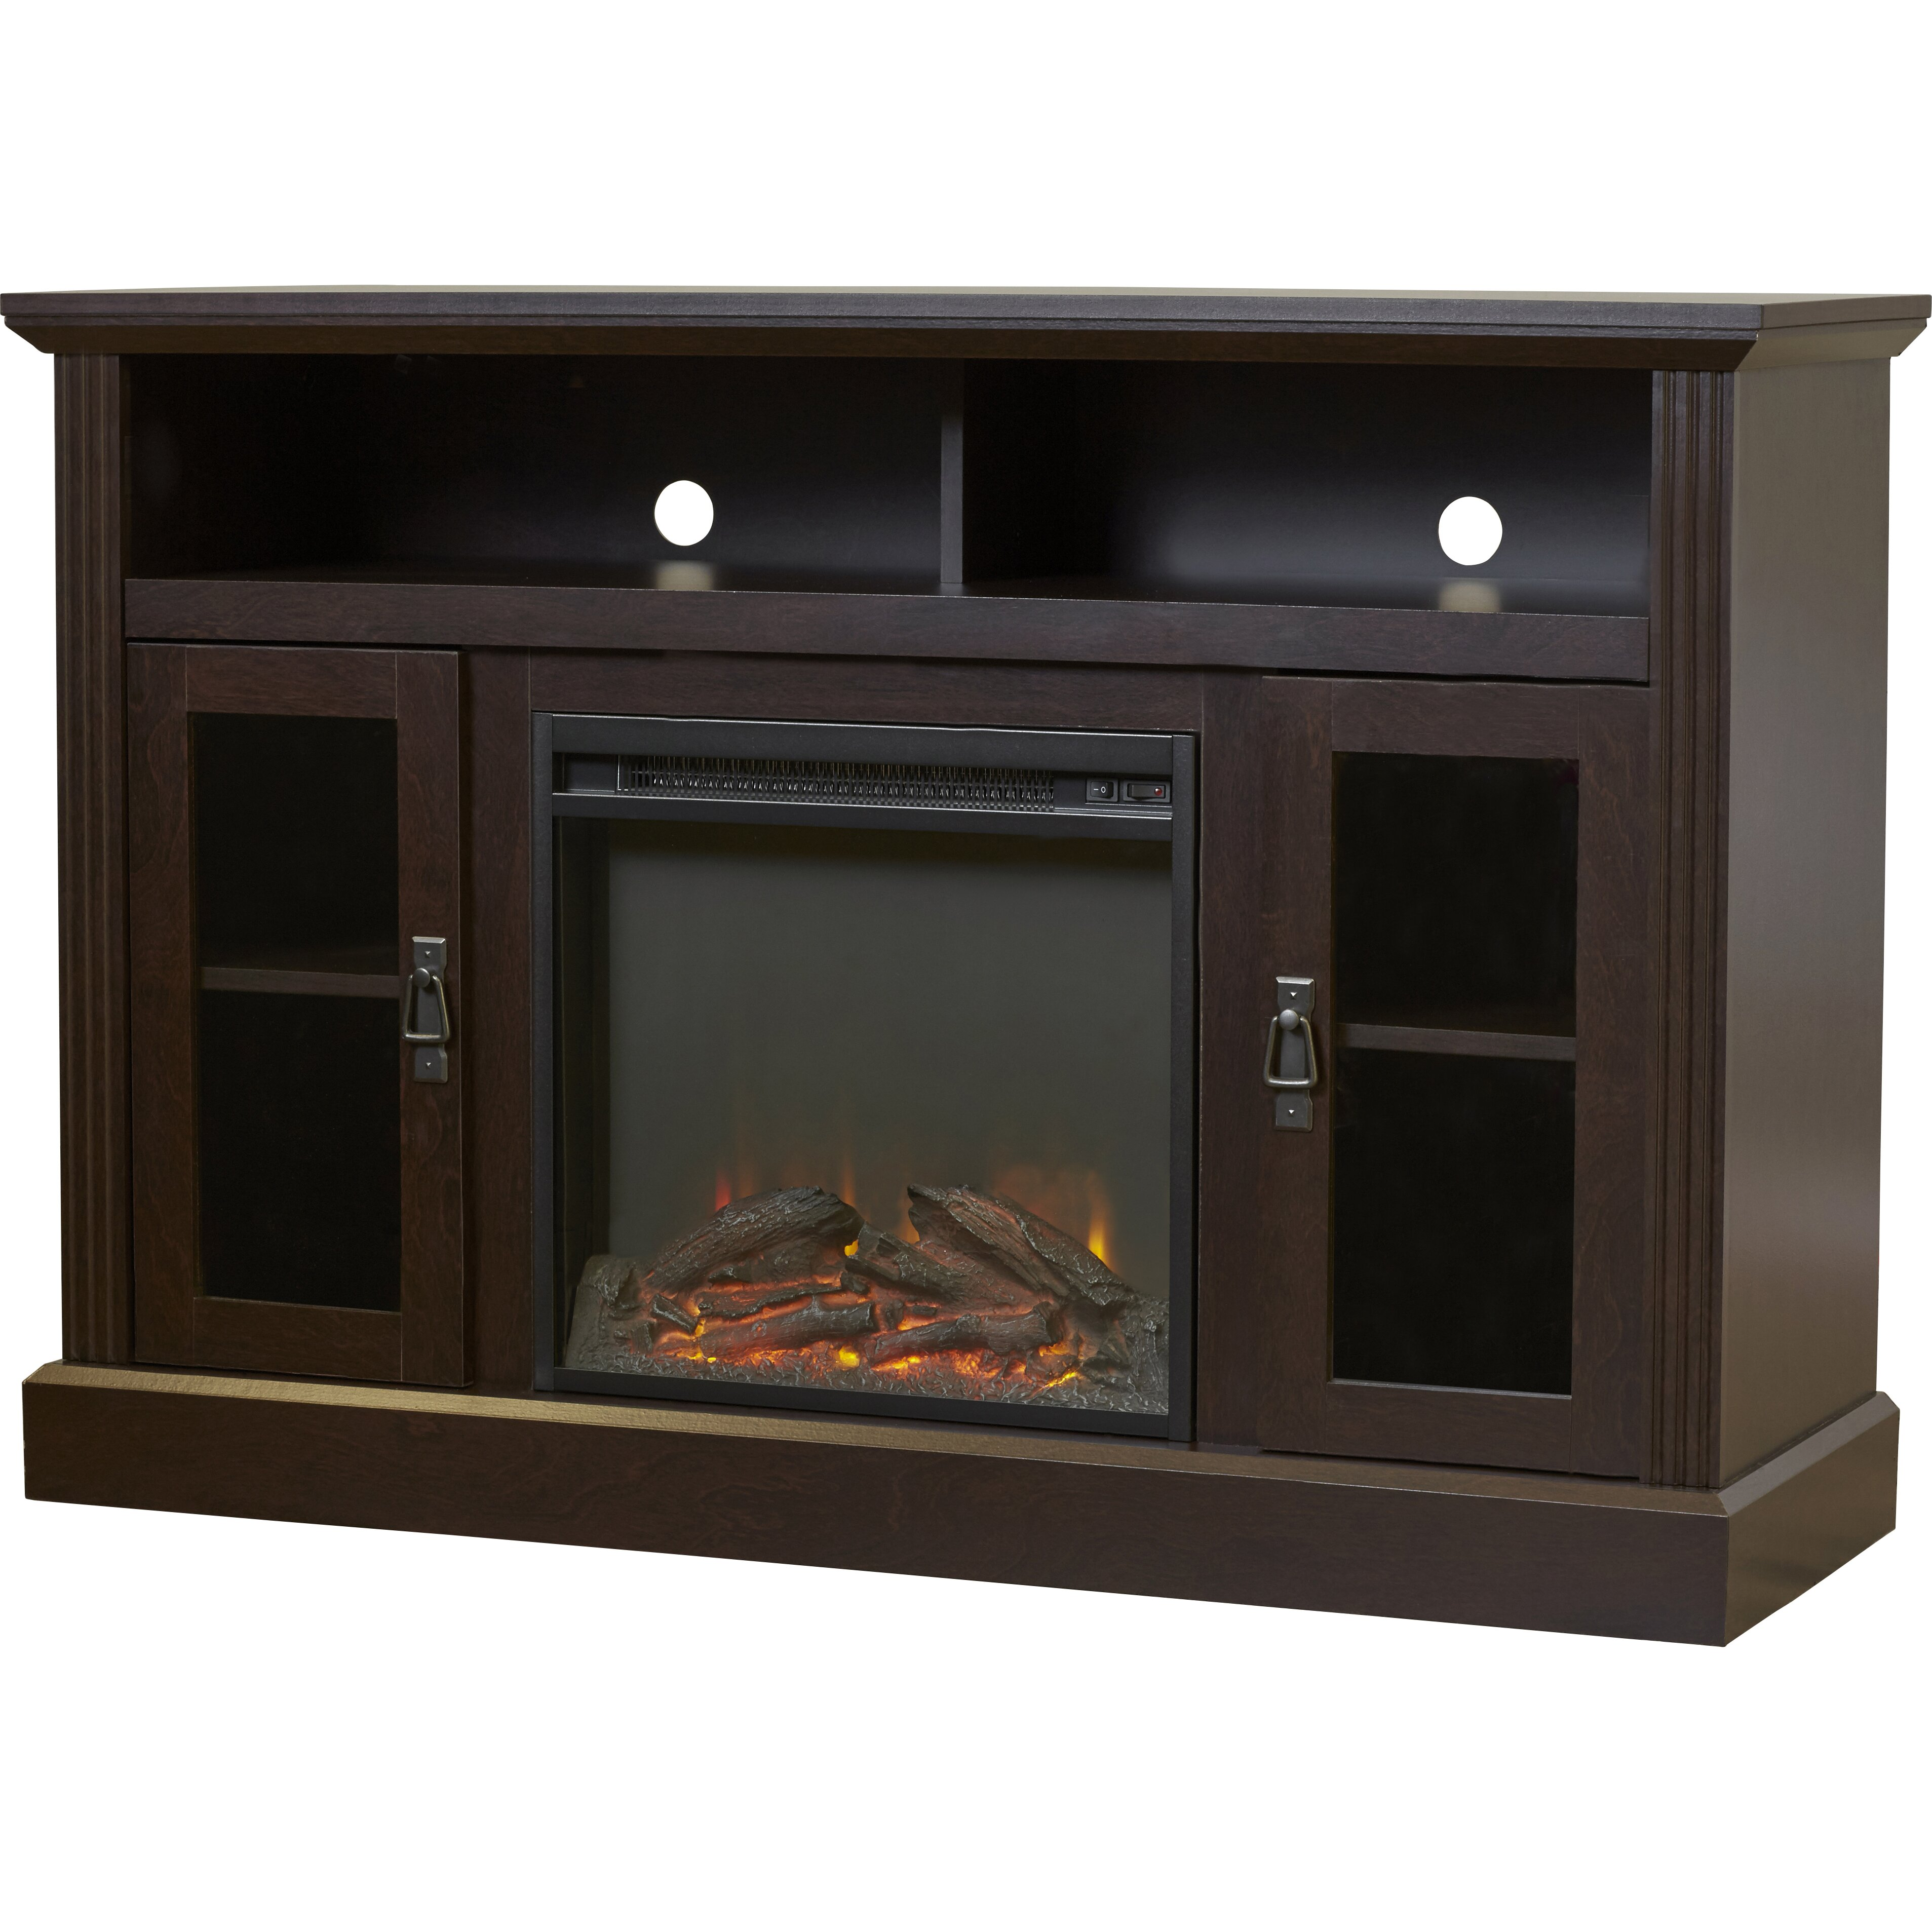 darby home co cristemas tv stand with electric fireplace reviews wayfair. Black Bedroom Furniture Sets. Home Design Ideas